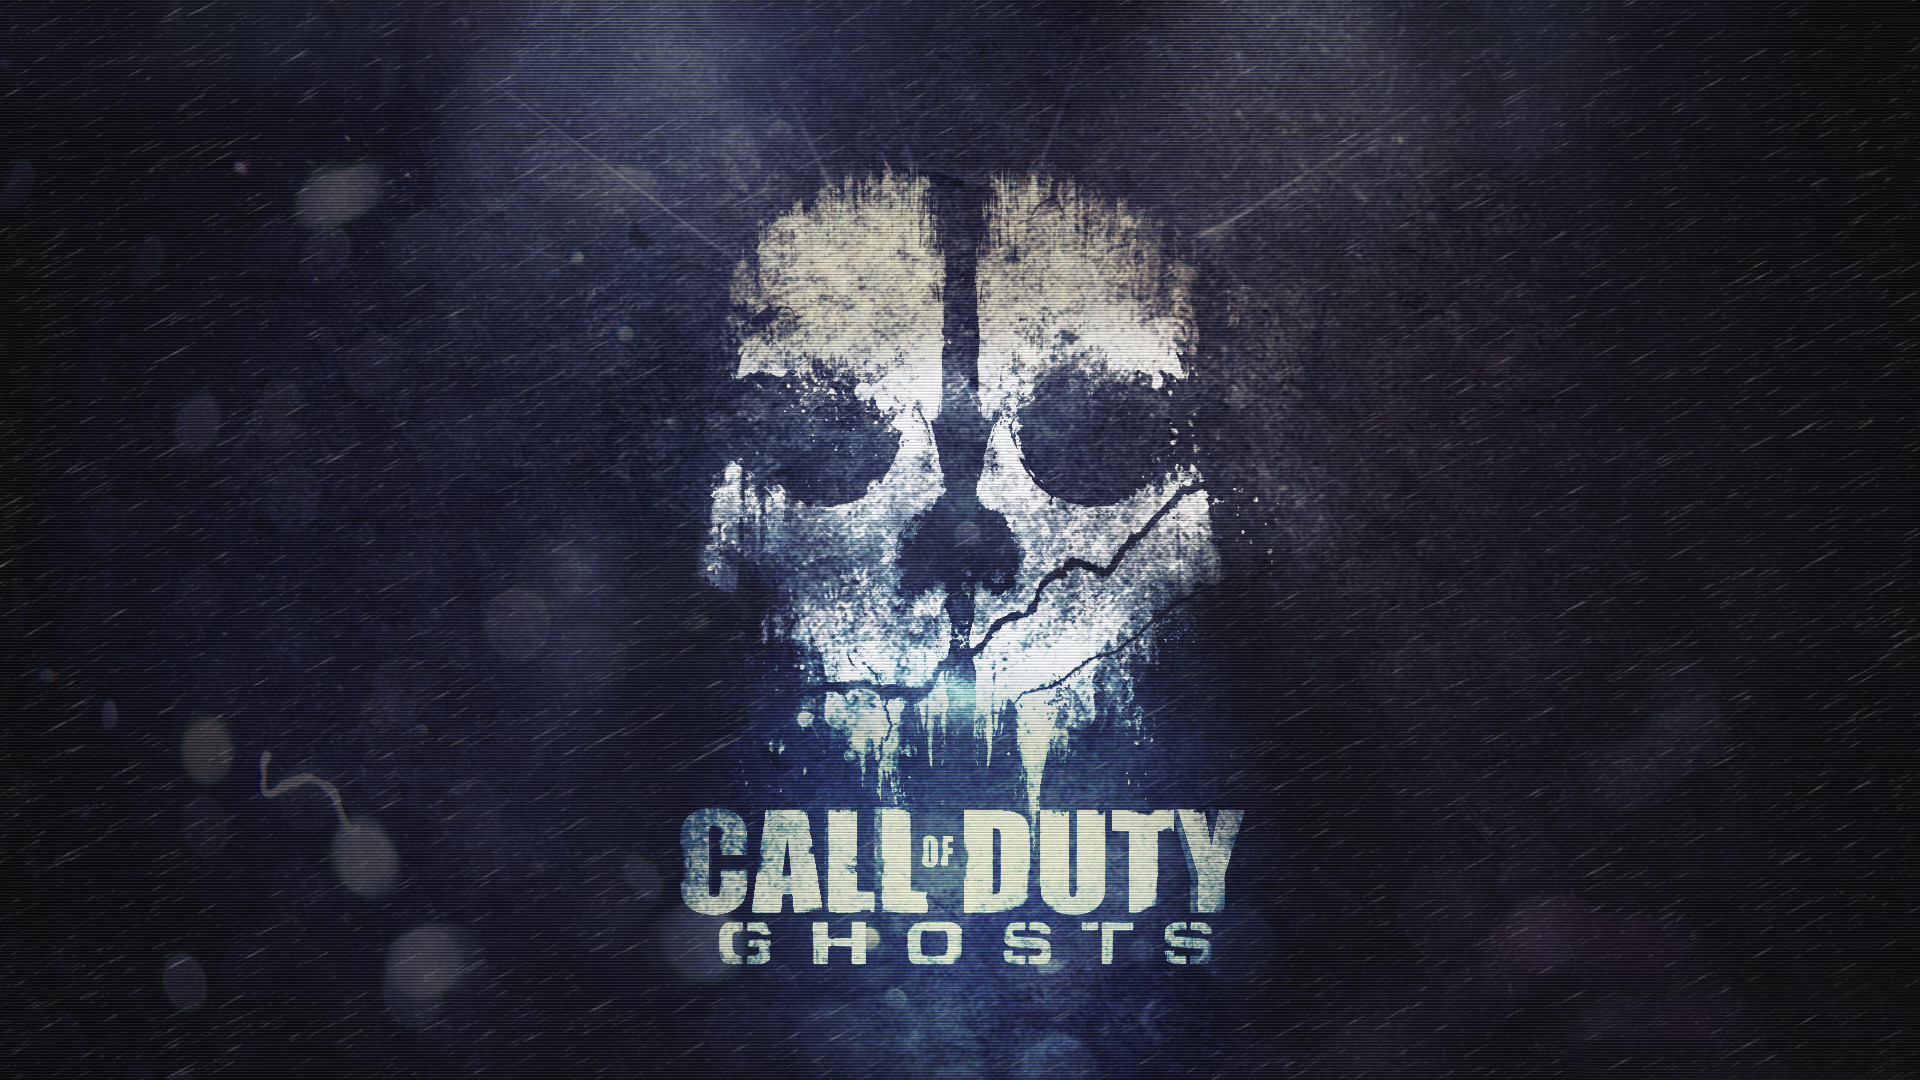 COD CALL OF DUTY GHOST RECON FULL SKI FACE MASK BALACLAVA … COD CALL OF  DUTY GHOST RECON FULL SKI FACE MASK BALACLAVA